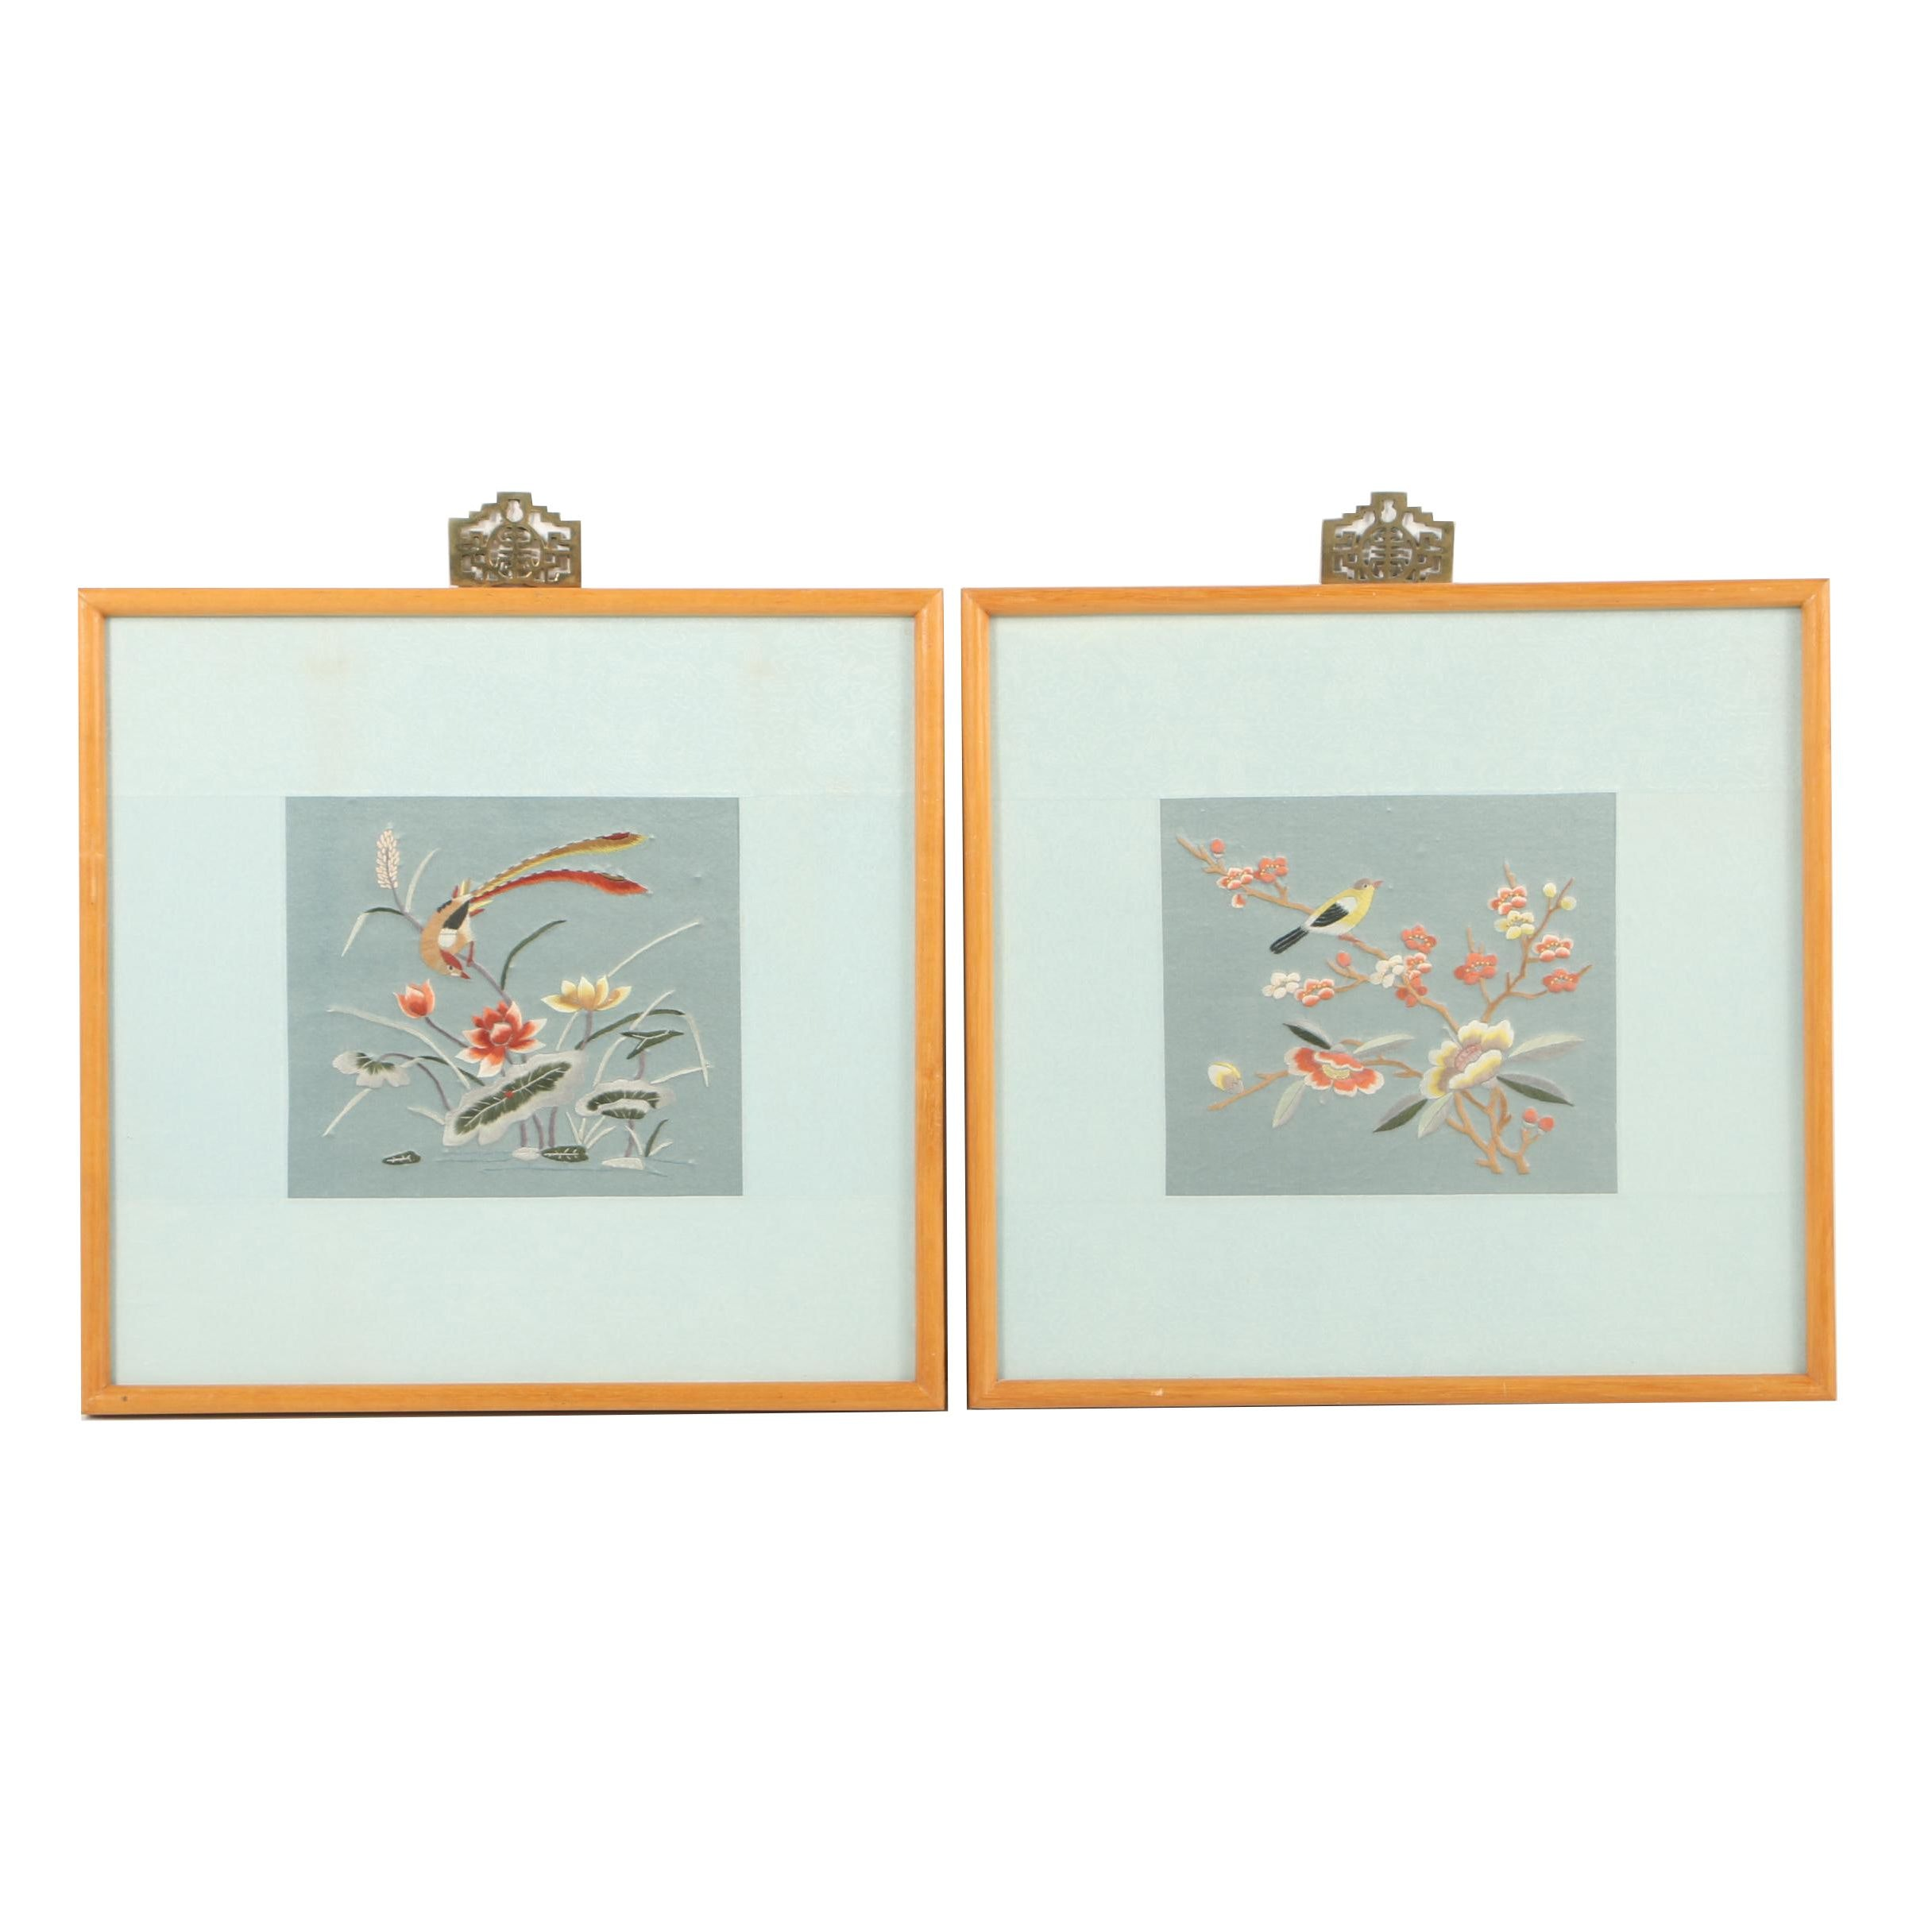 Framed Chinese Silk Embroideries depicting Flower and Bird Vignettes